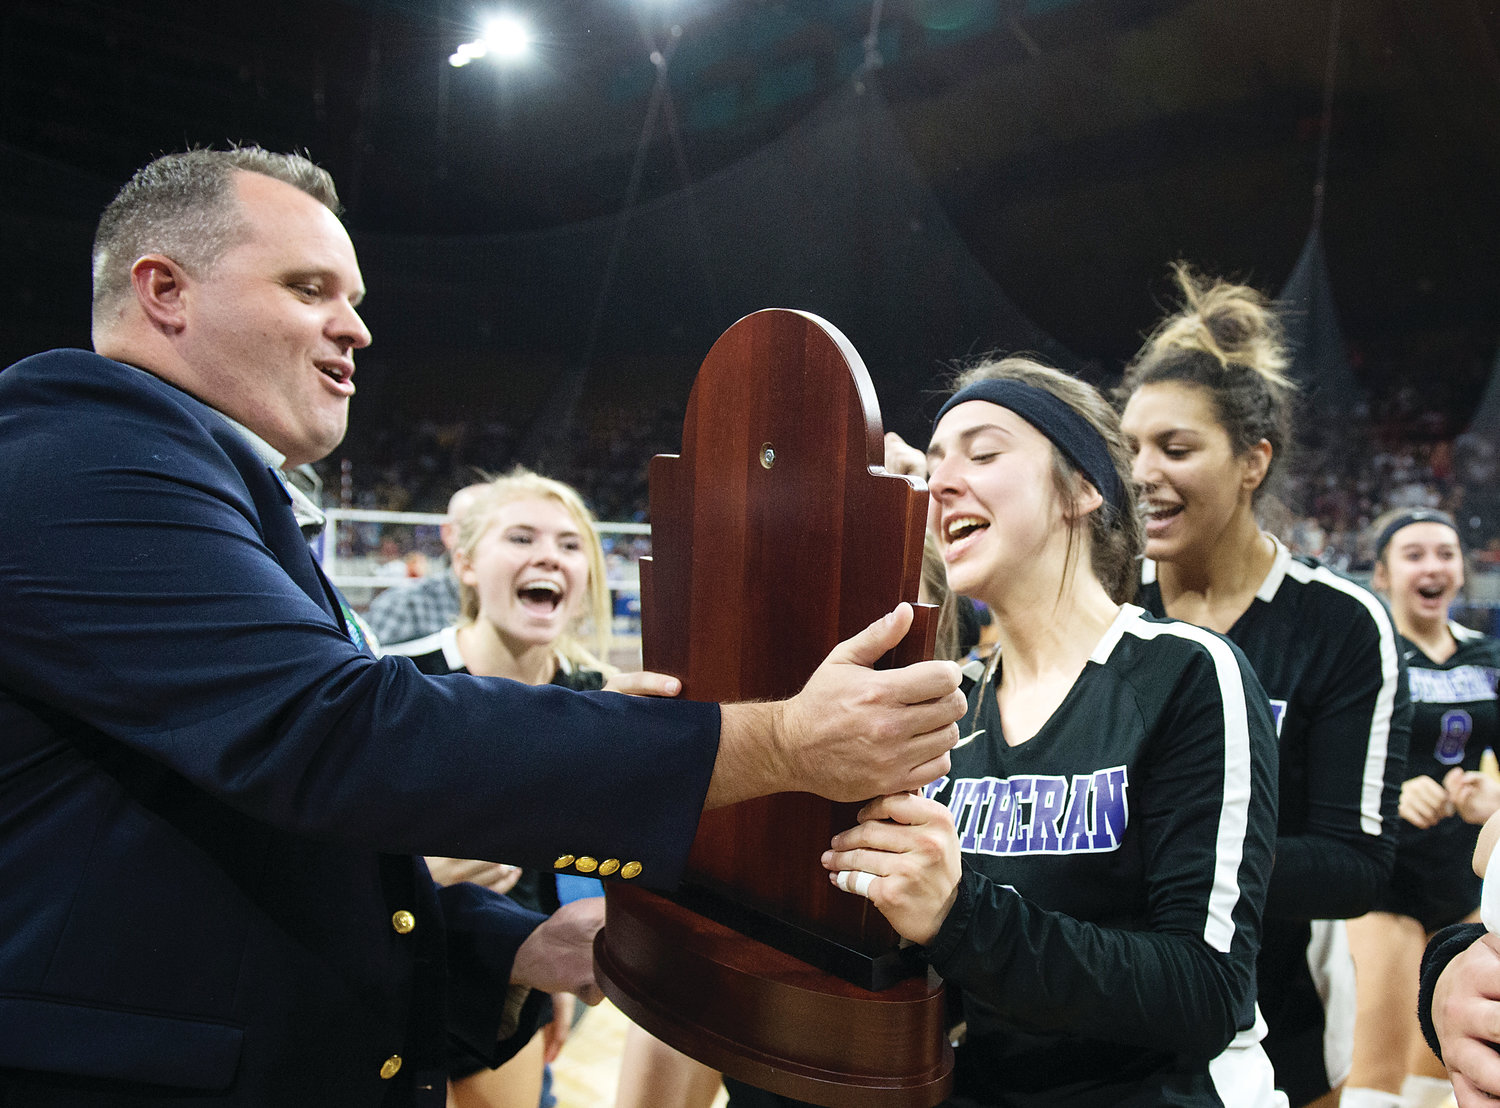 Lutheran's Abby Akers accepts the Championship trophy from CHSAA official Caleb Coates after defeating Colorado Springs Christian 3-1 for the 3A State Final on Nov. 10 at the Denver Coliseum.